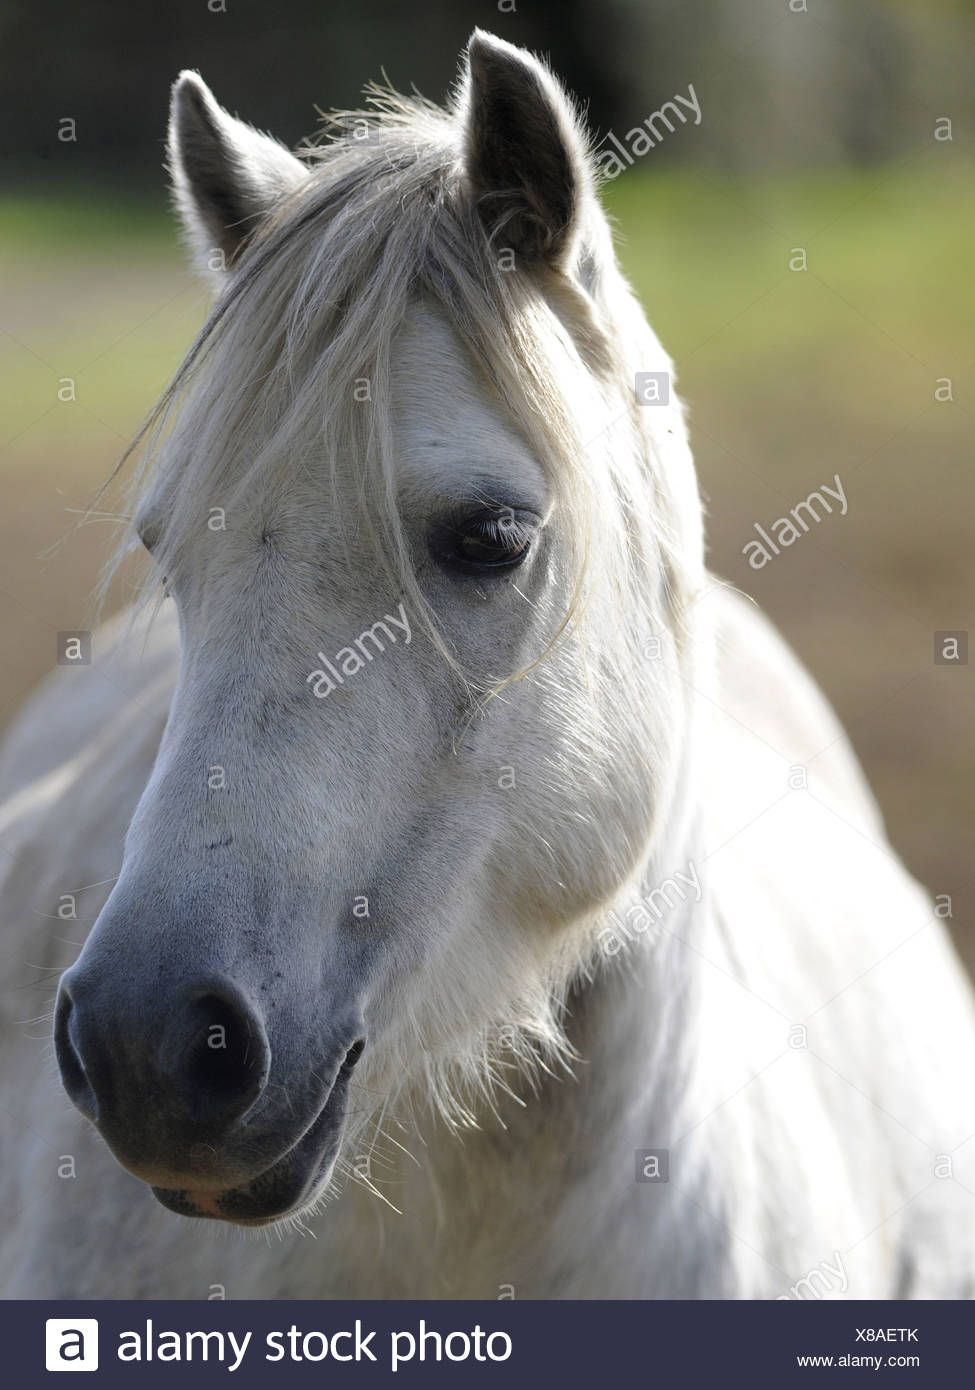 A wild welsh pony on the Brecon Beacons. - Stock Image